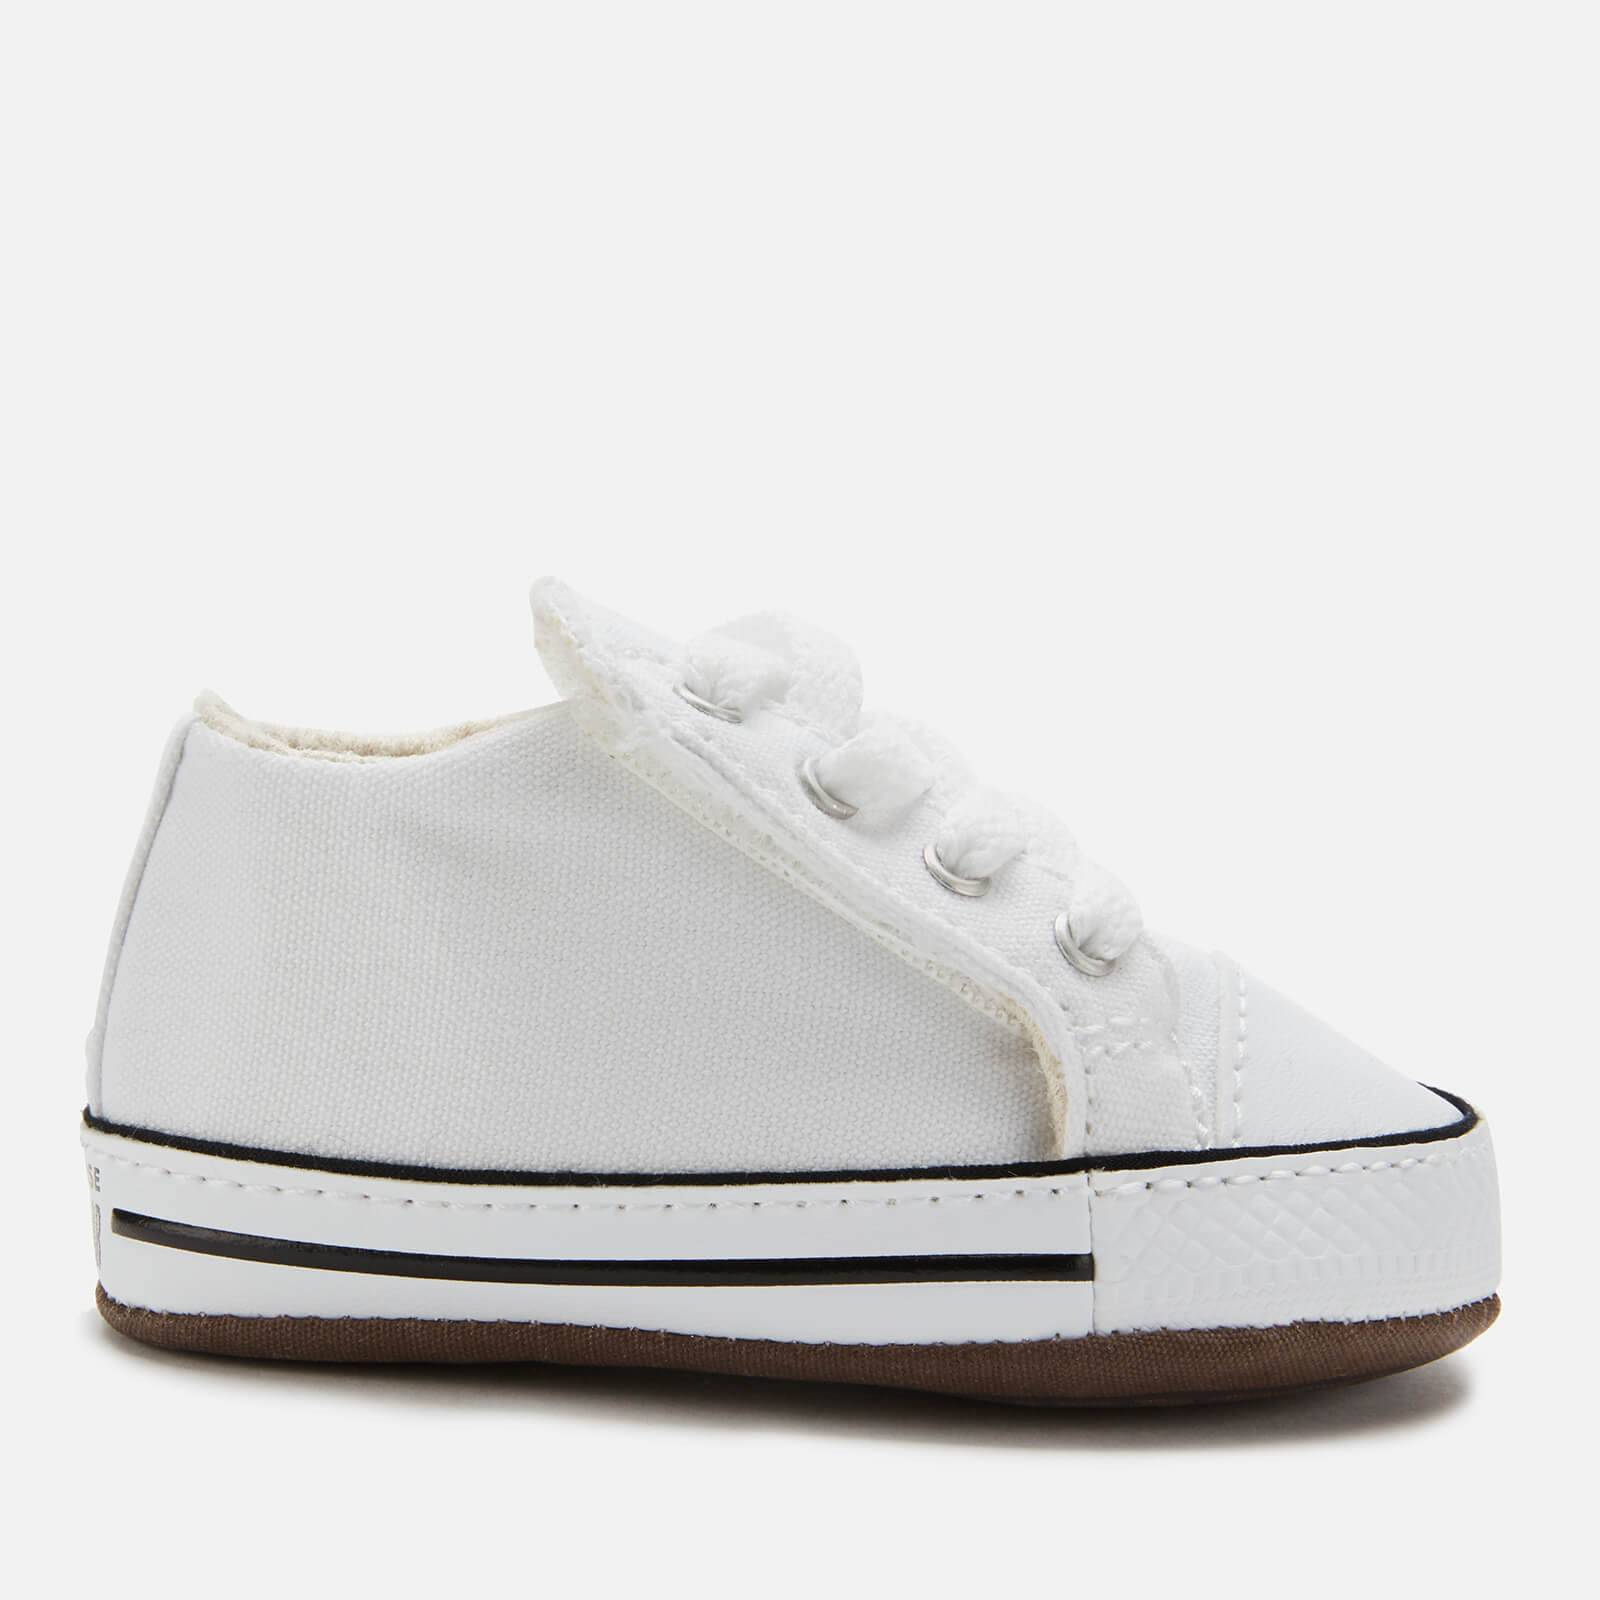 Converse Babies Chuck Taylor All Star Cribster Canvas Mid Trainers - White/Natural Ivory/White - UK 2 Baby - White